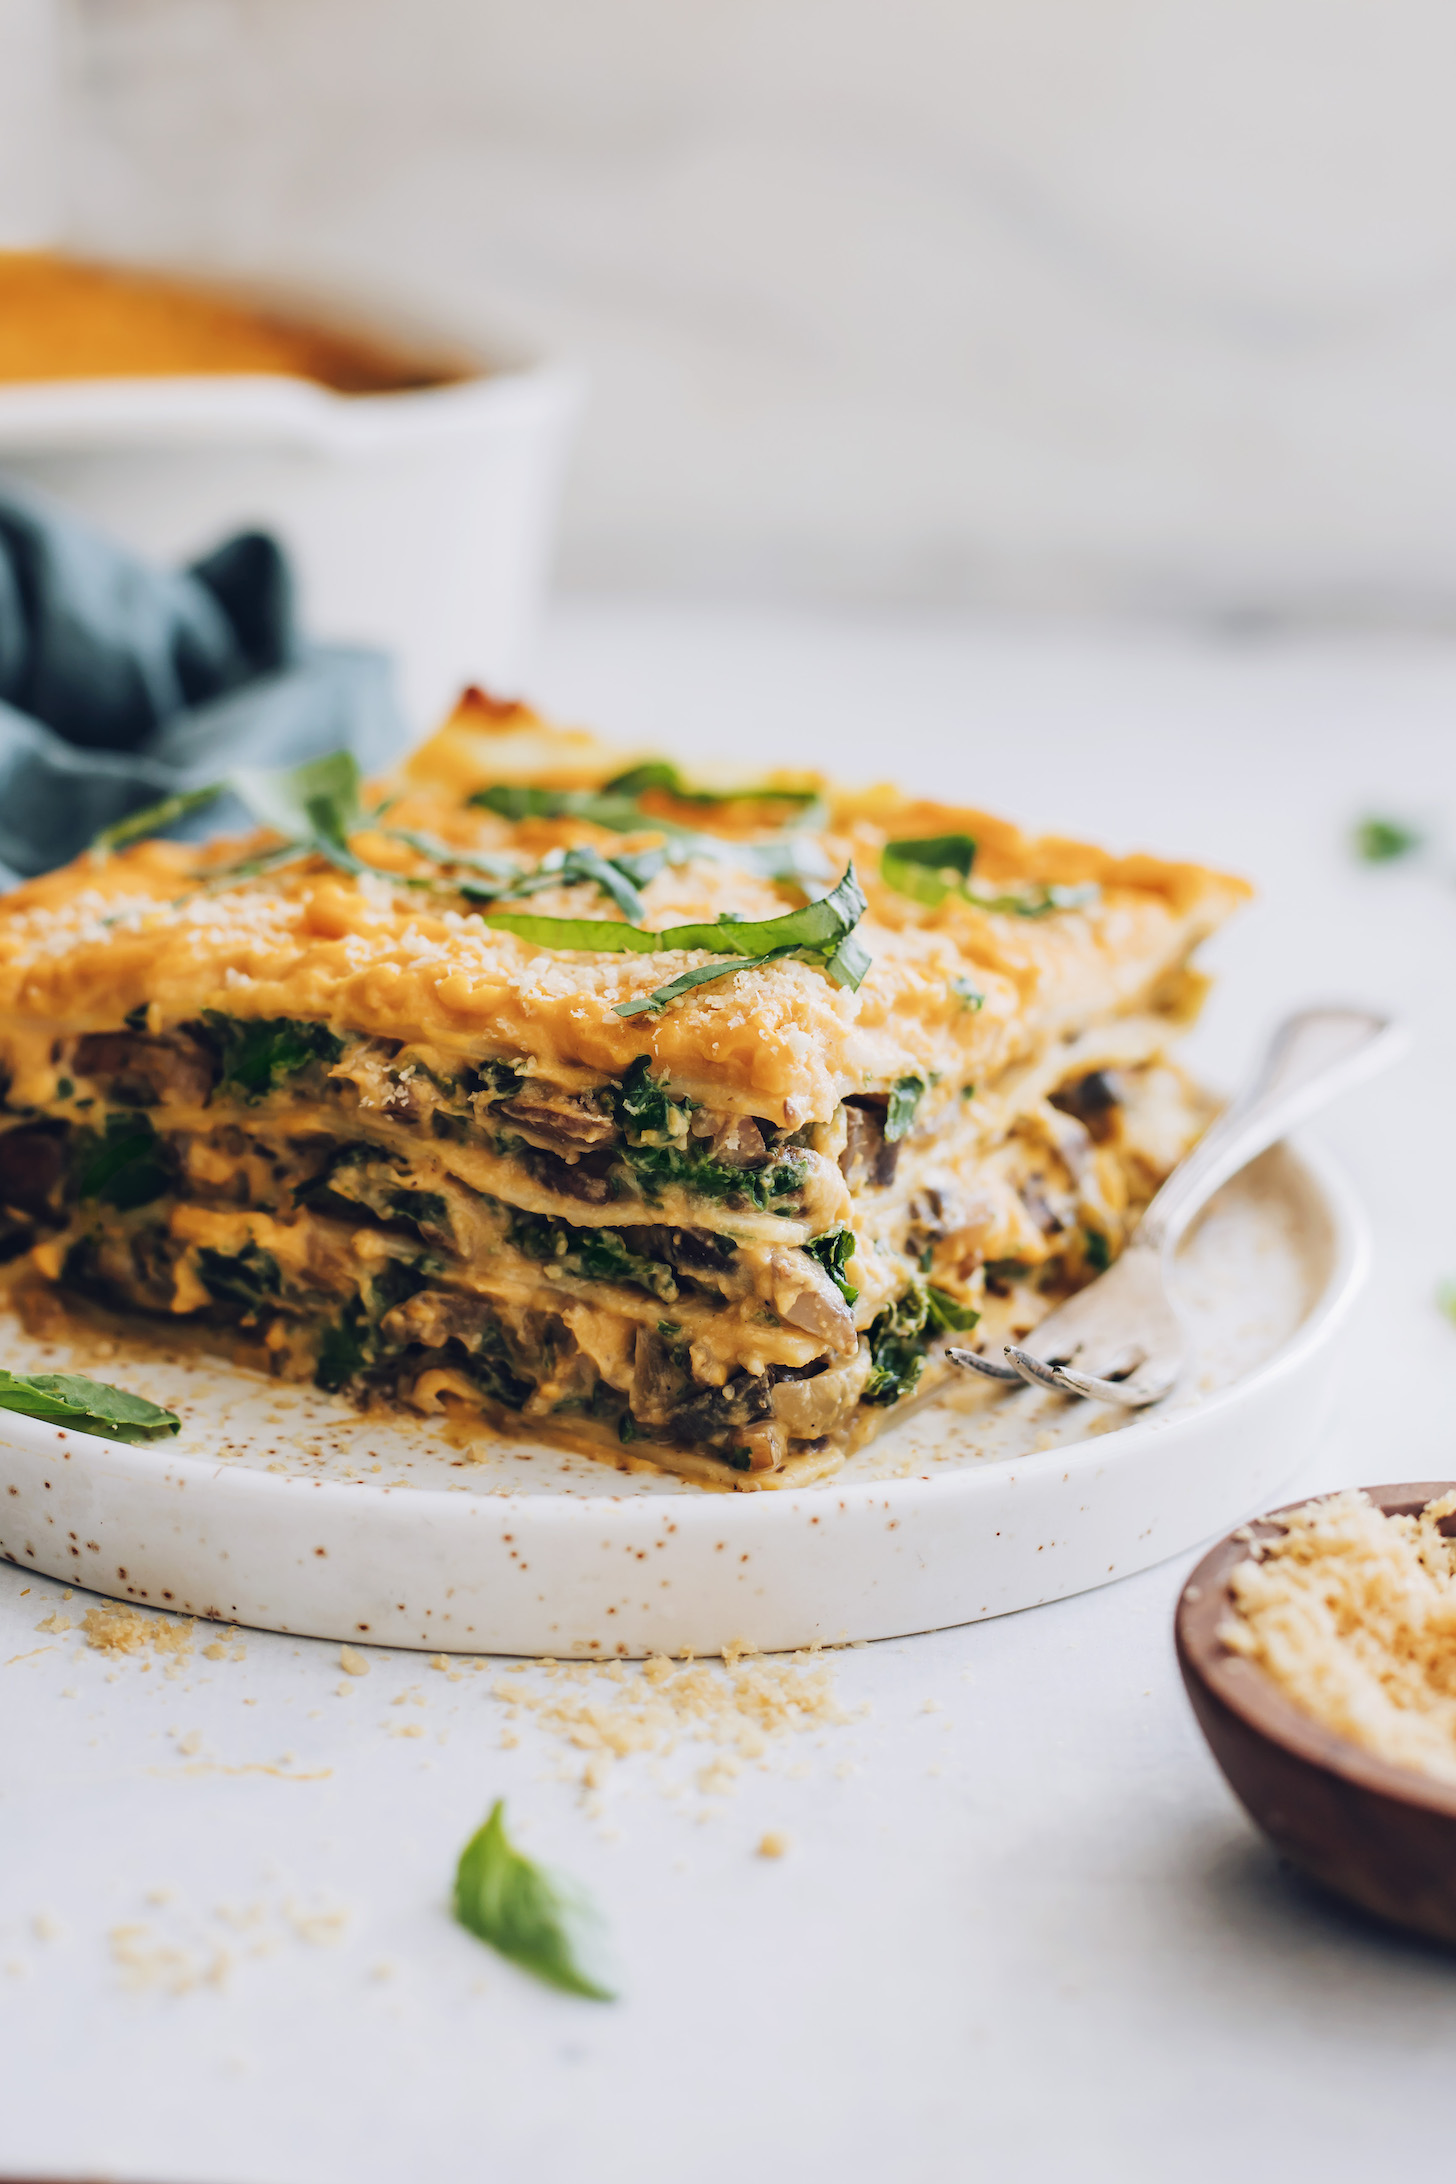 Fork and slice of butternut squash lasagna on a plate